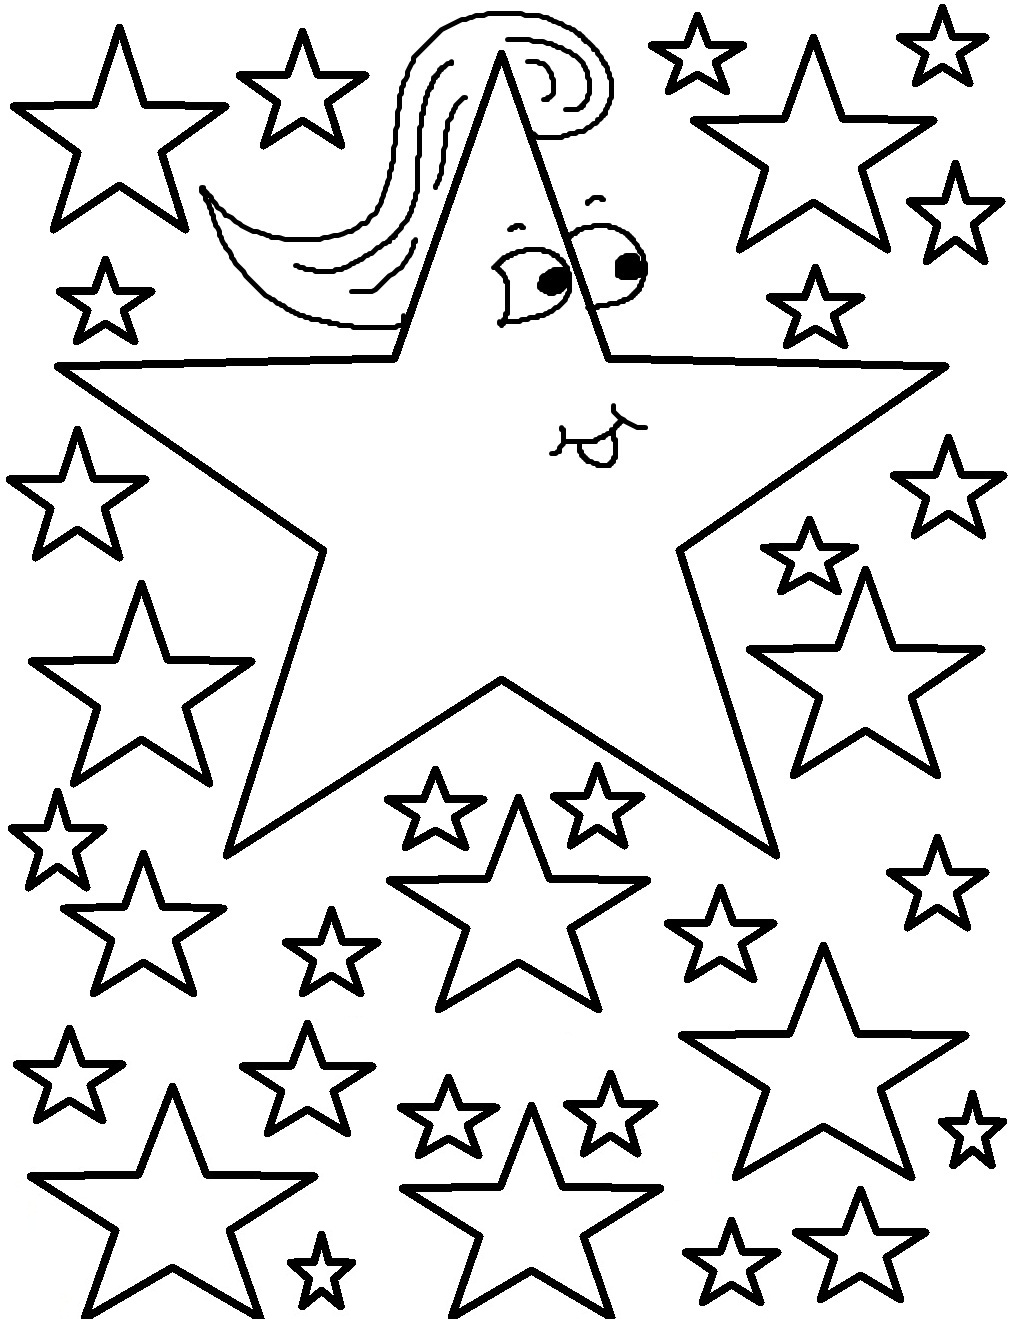 hard stars coloring pages - photo#25